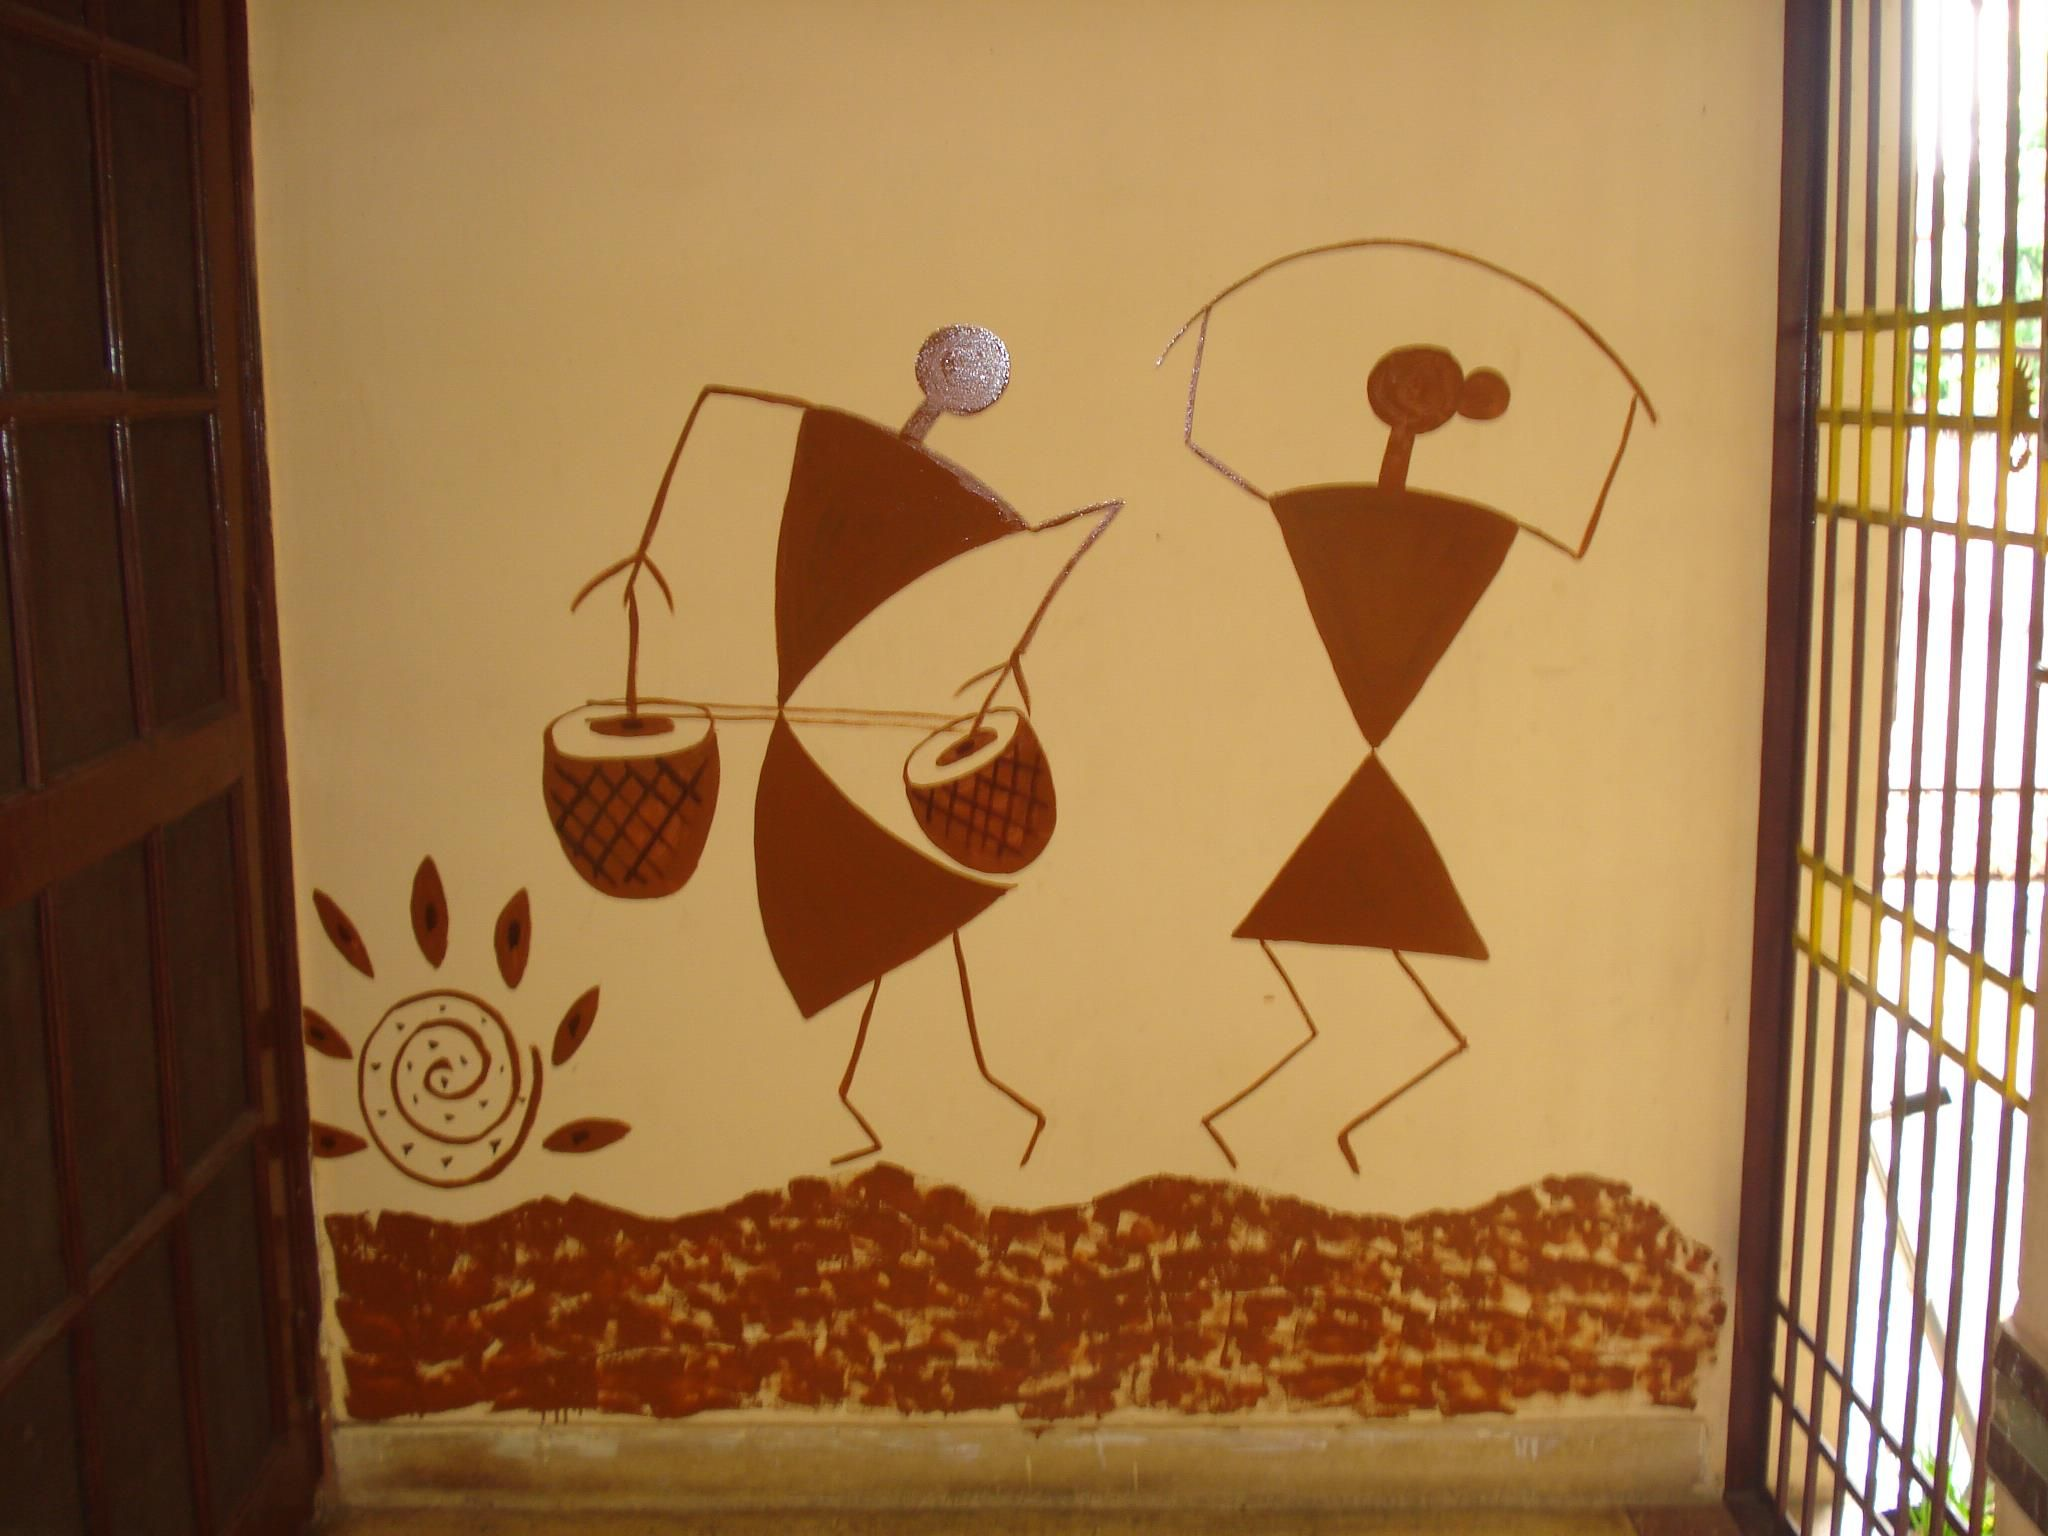 Warli art on a wall near a door entrance fanart worli painting